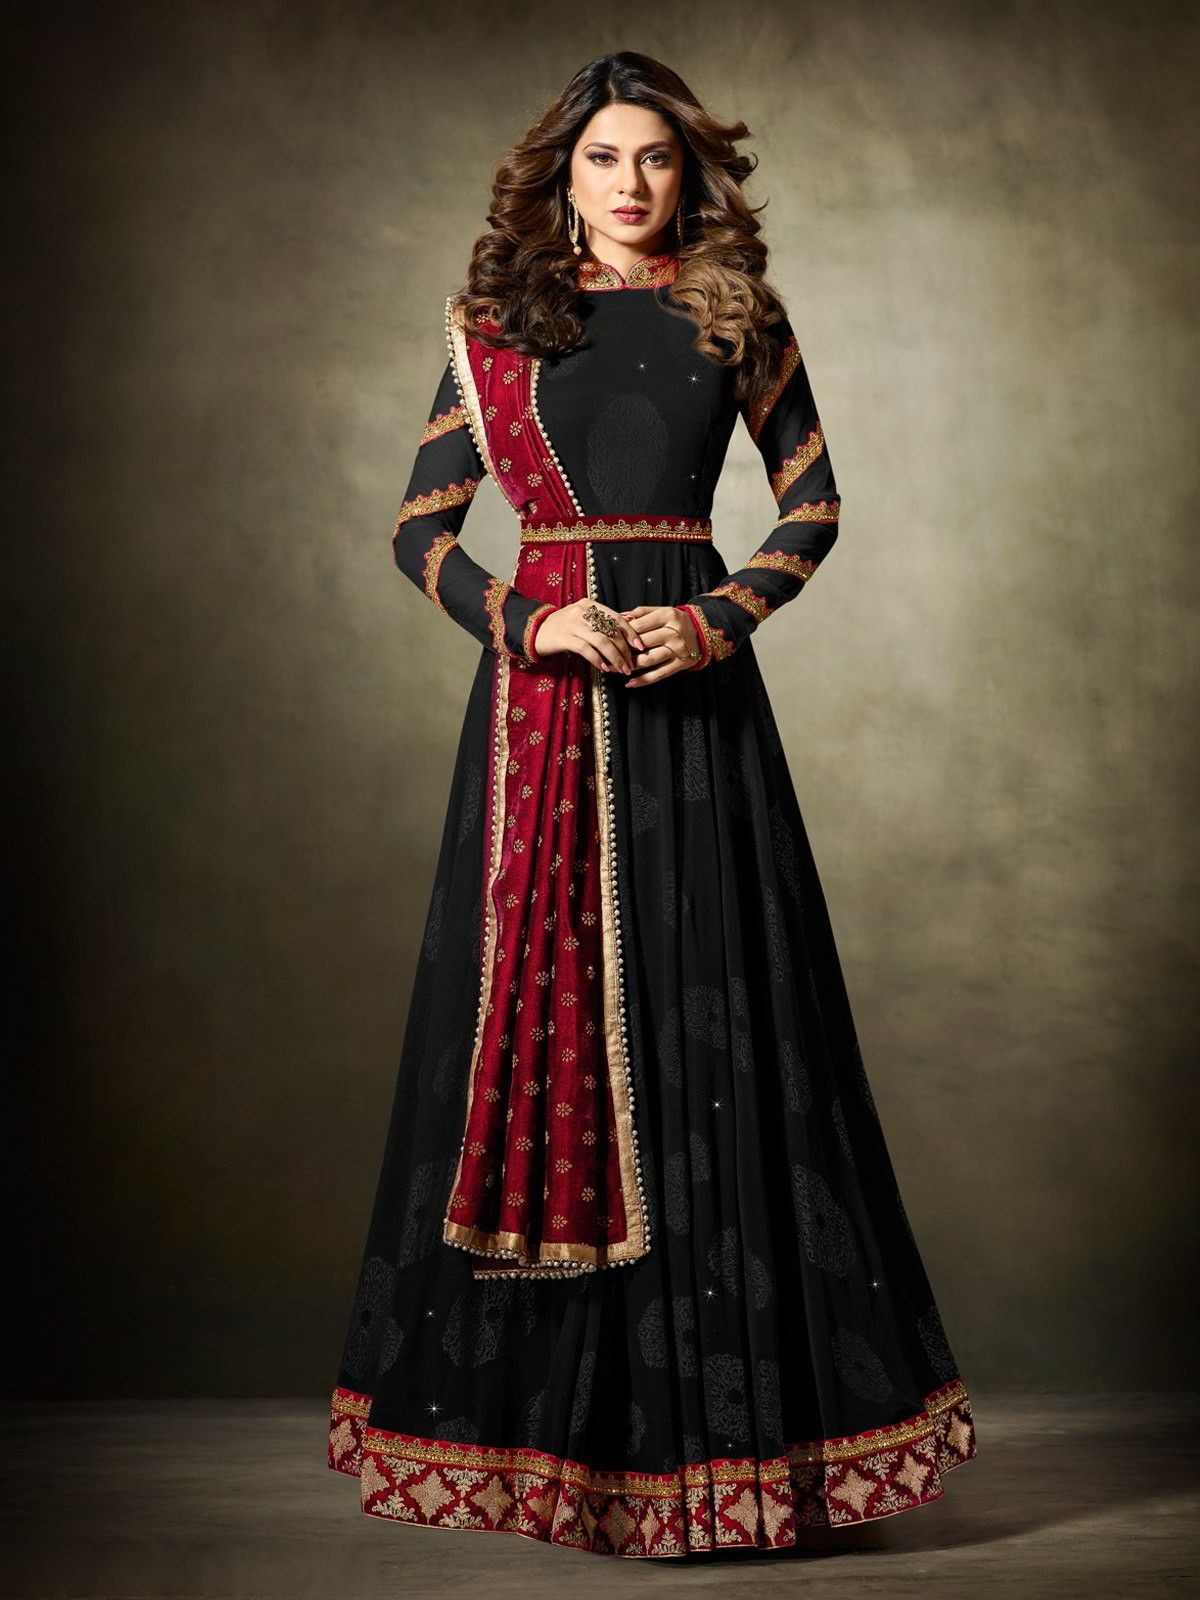 39462a4a5a Buy Bollywood Diva Jennifer Winget Style Black Partywear Anarkali Suit  Online at the Best Price from Inddus.